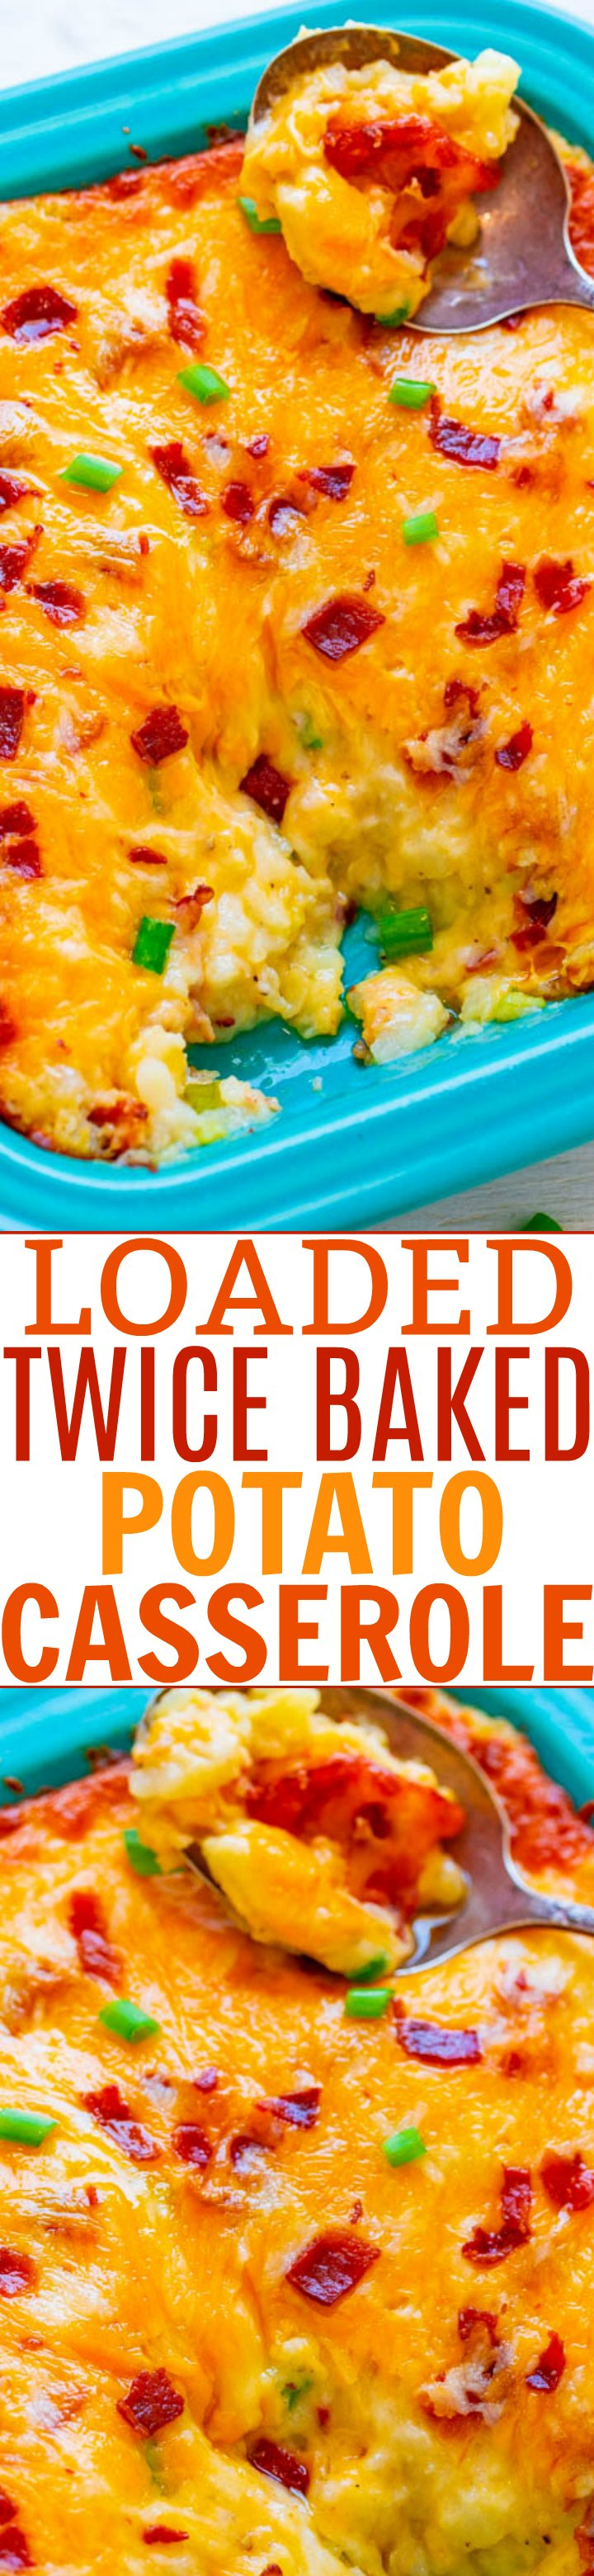 Loaded Twice Baked Potato Casserole - Tender potatoes mixed with butter, cheese, sour cream, bacon, and green onions for the ultimate in LOADED baked potatoes!! AMAZING comfort food that's irresistible!!